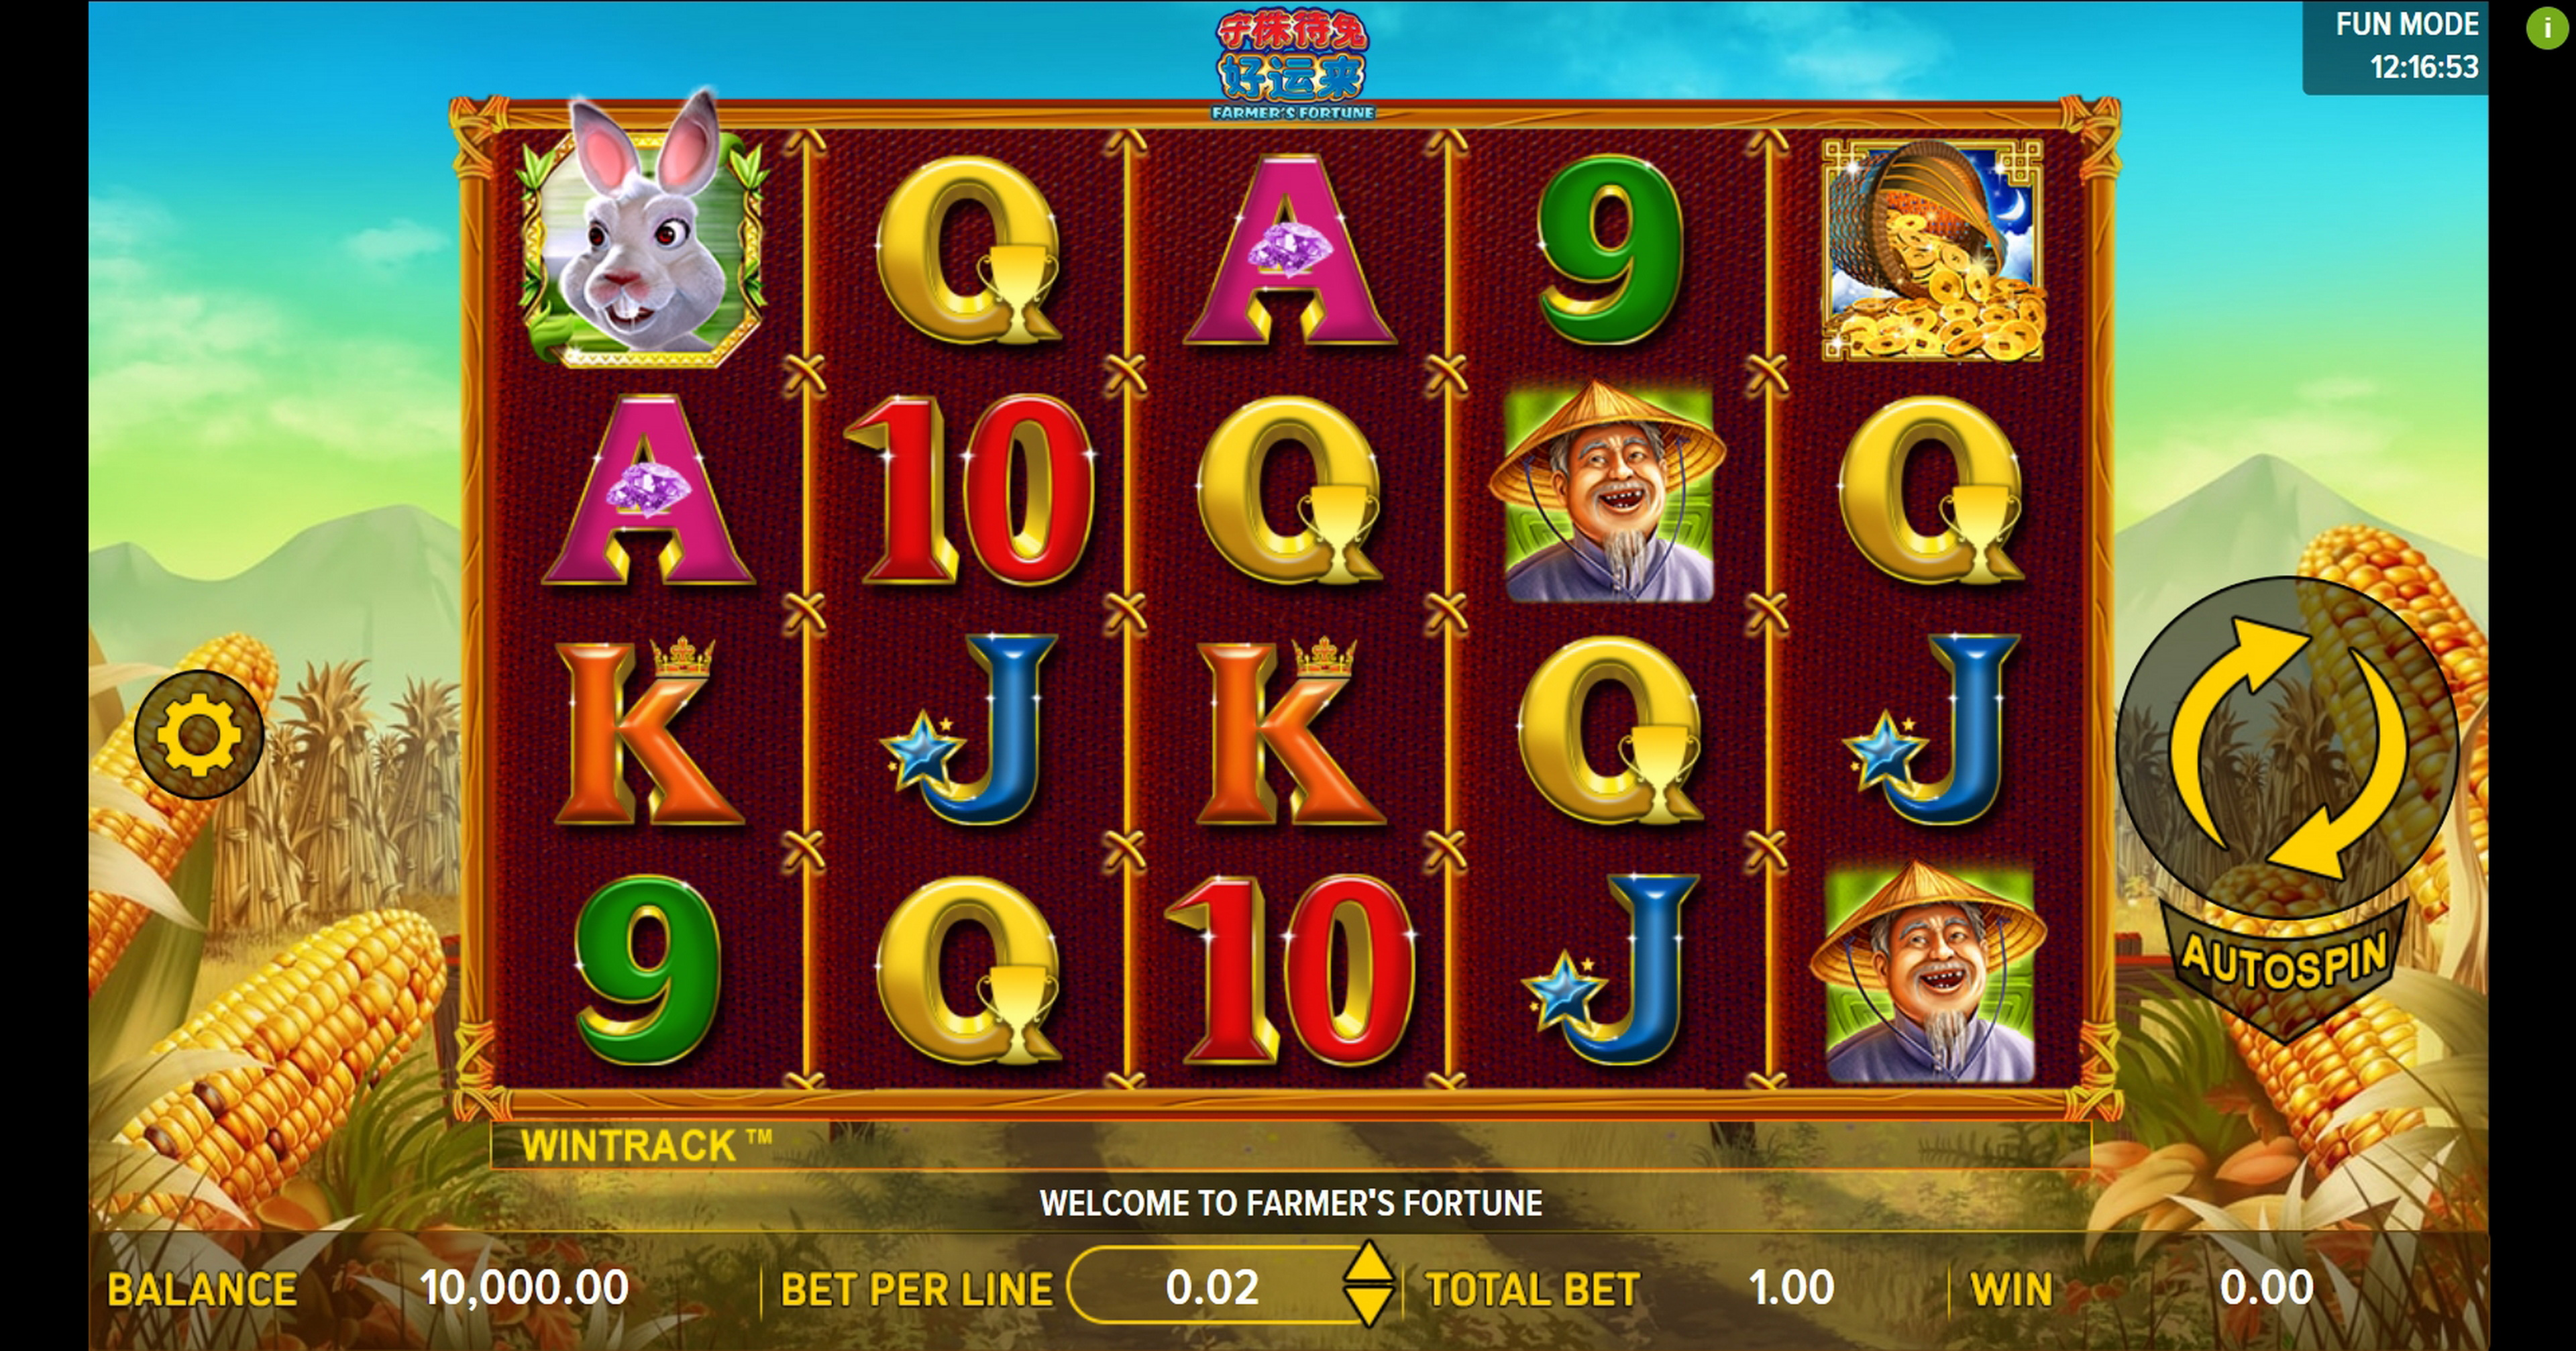 Reels in Farmers Fortune Slot Game by Aspect Gaming